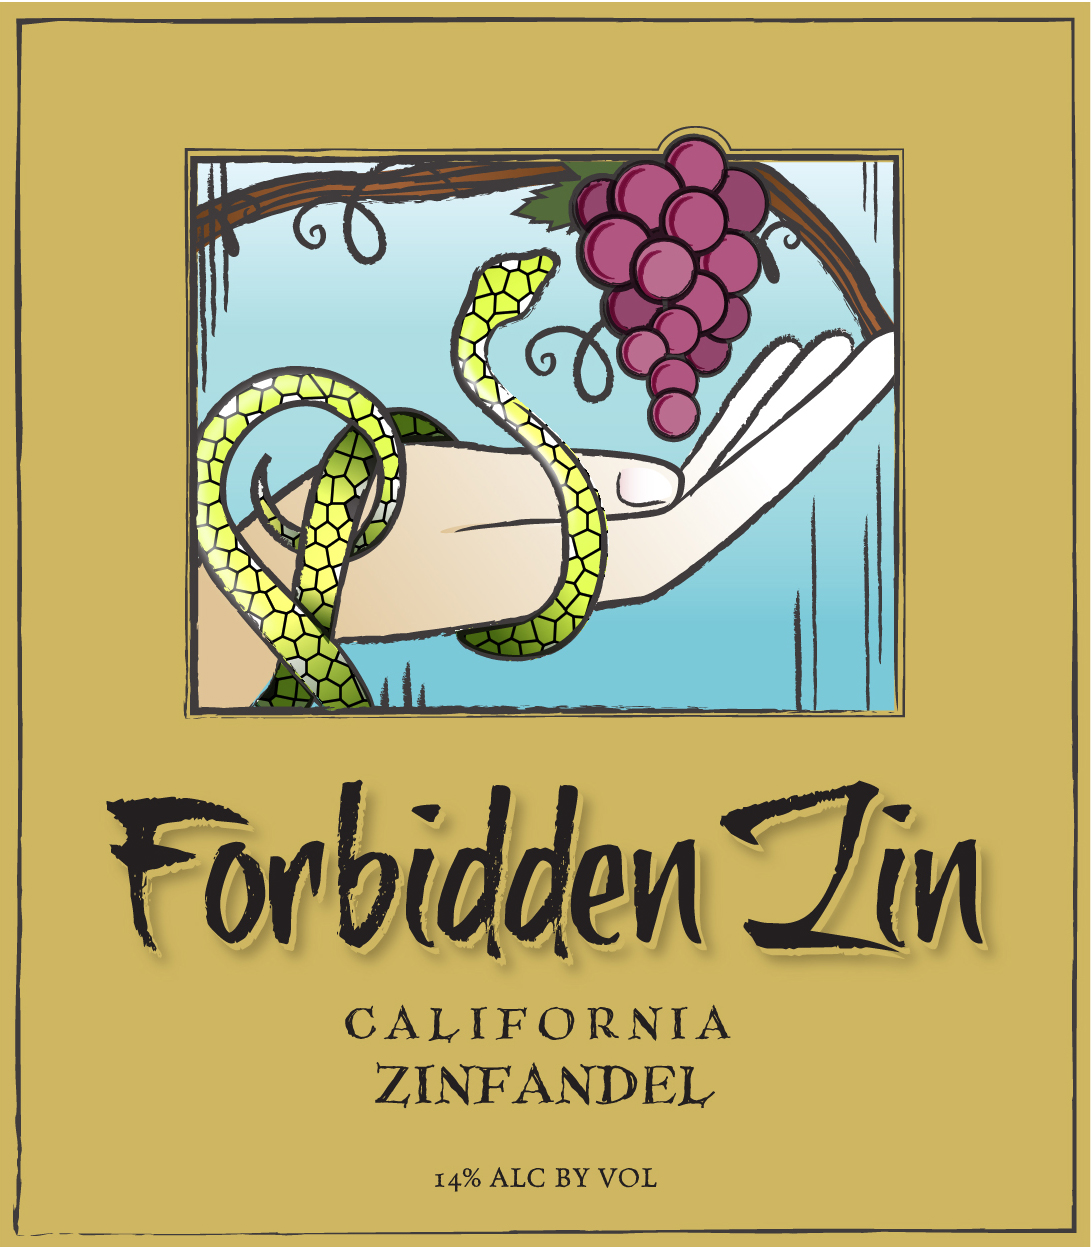 There is something evocative about the forbidden fruit. Forbidden Zin has that same deep, dark, brooding element of silken intrigue and lush excitement. Succulent spicy notes of rich black cherry, tender damsel plum, and juicy raspberry entangle with velvety tannins and become too alluring to resist.